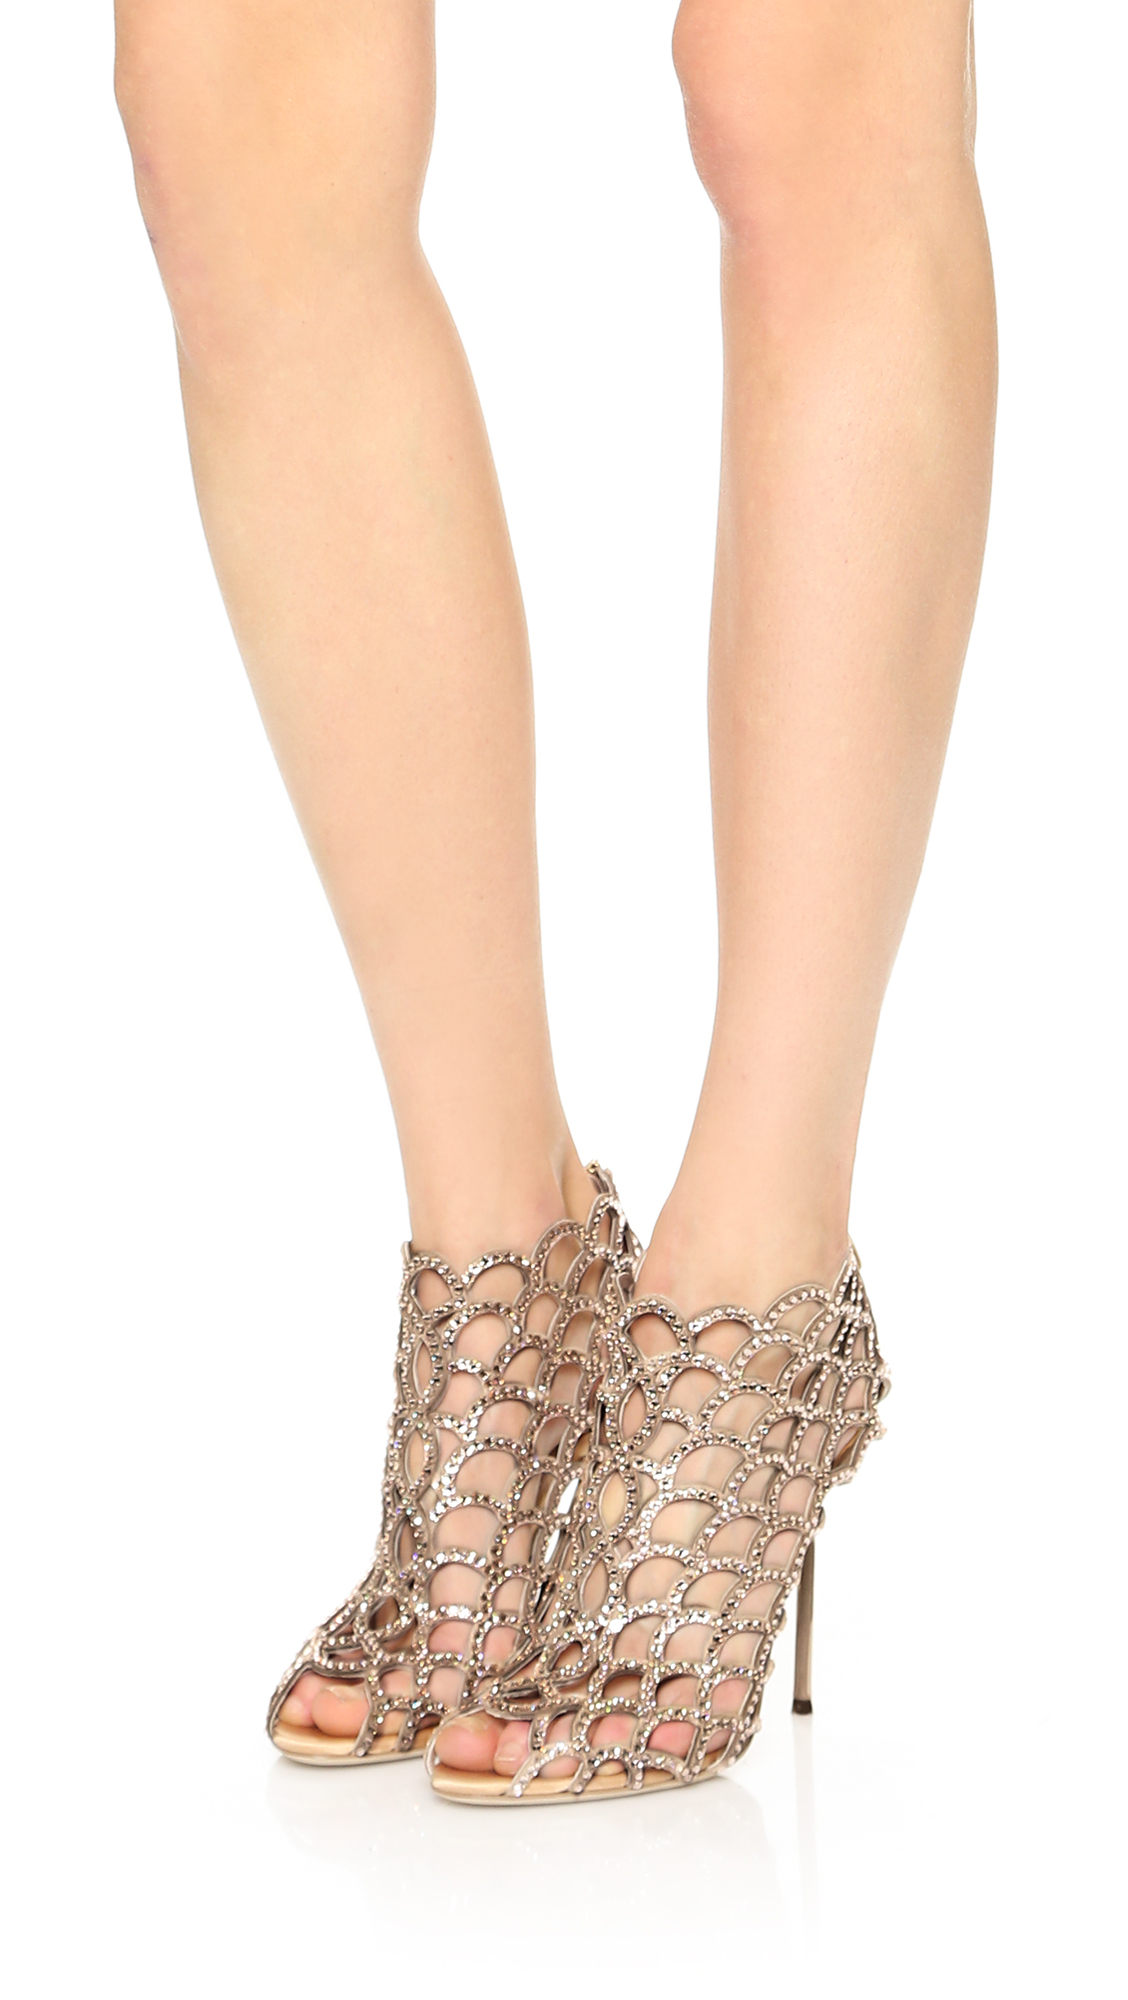 ed9fa6880 Sergio Rossi Mermaid Cage Booties